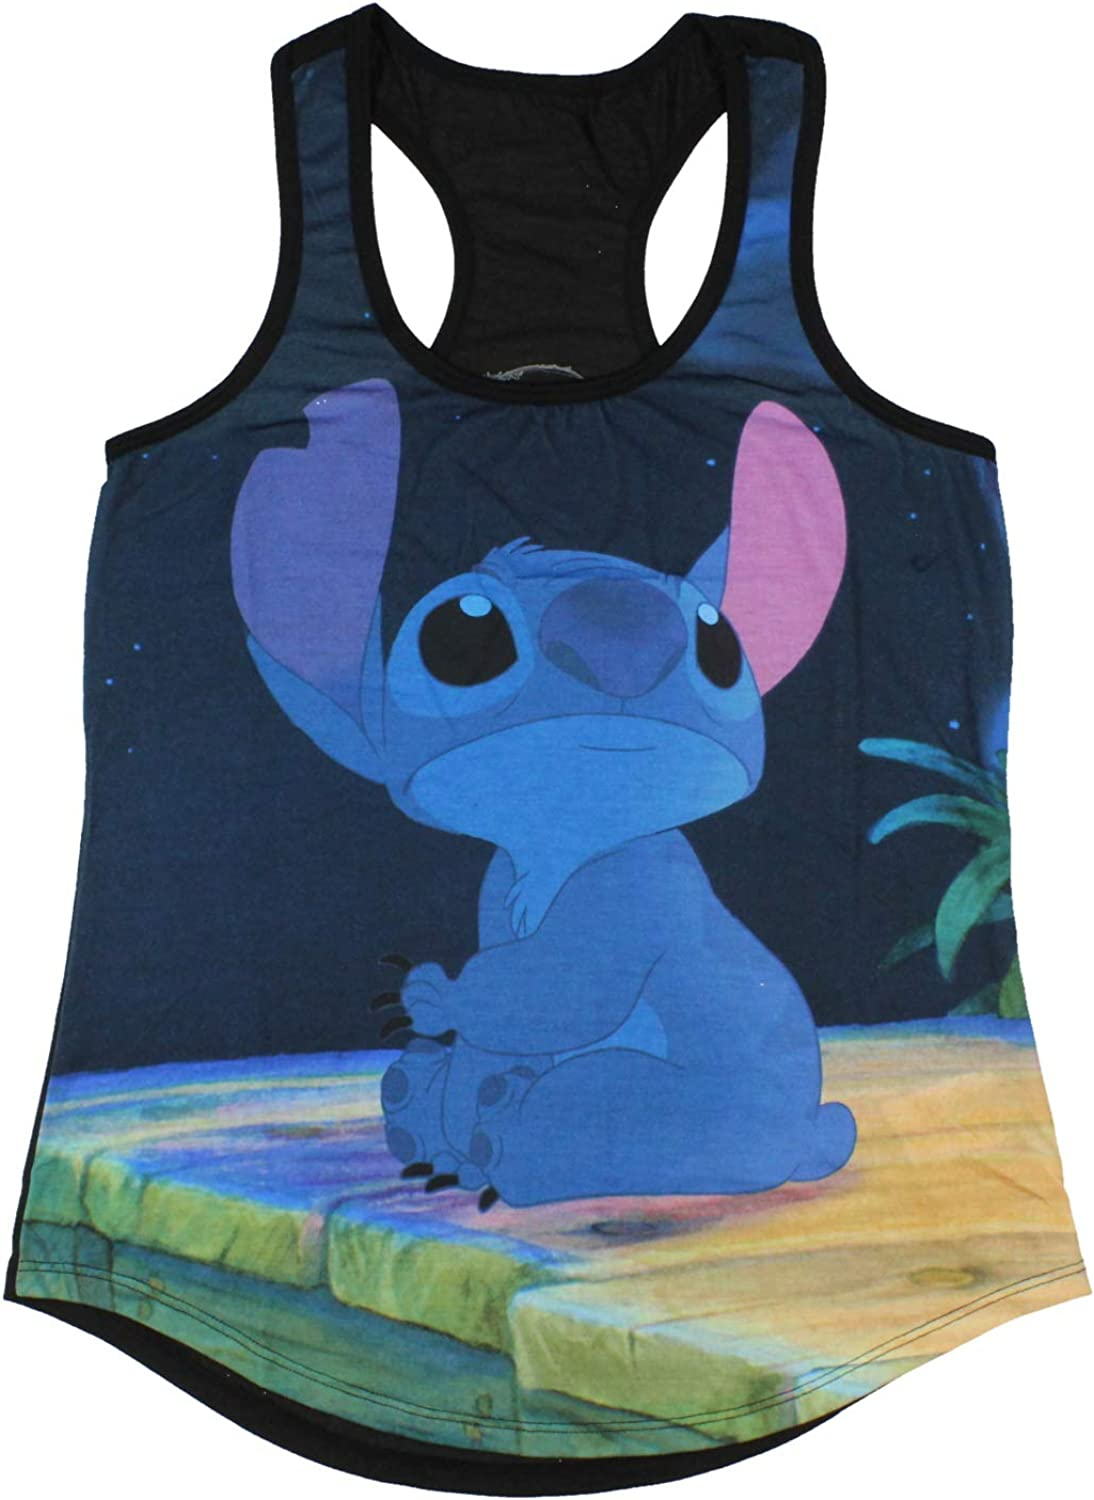 Cut up tank top tshirt graphic tee Lilo /& Stitch slashed and weaved braided shredded top racerback sleeveless